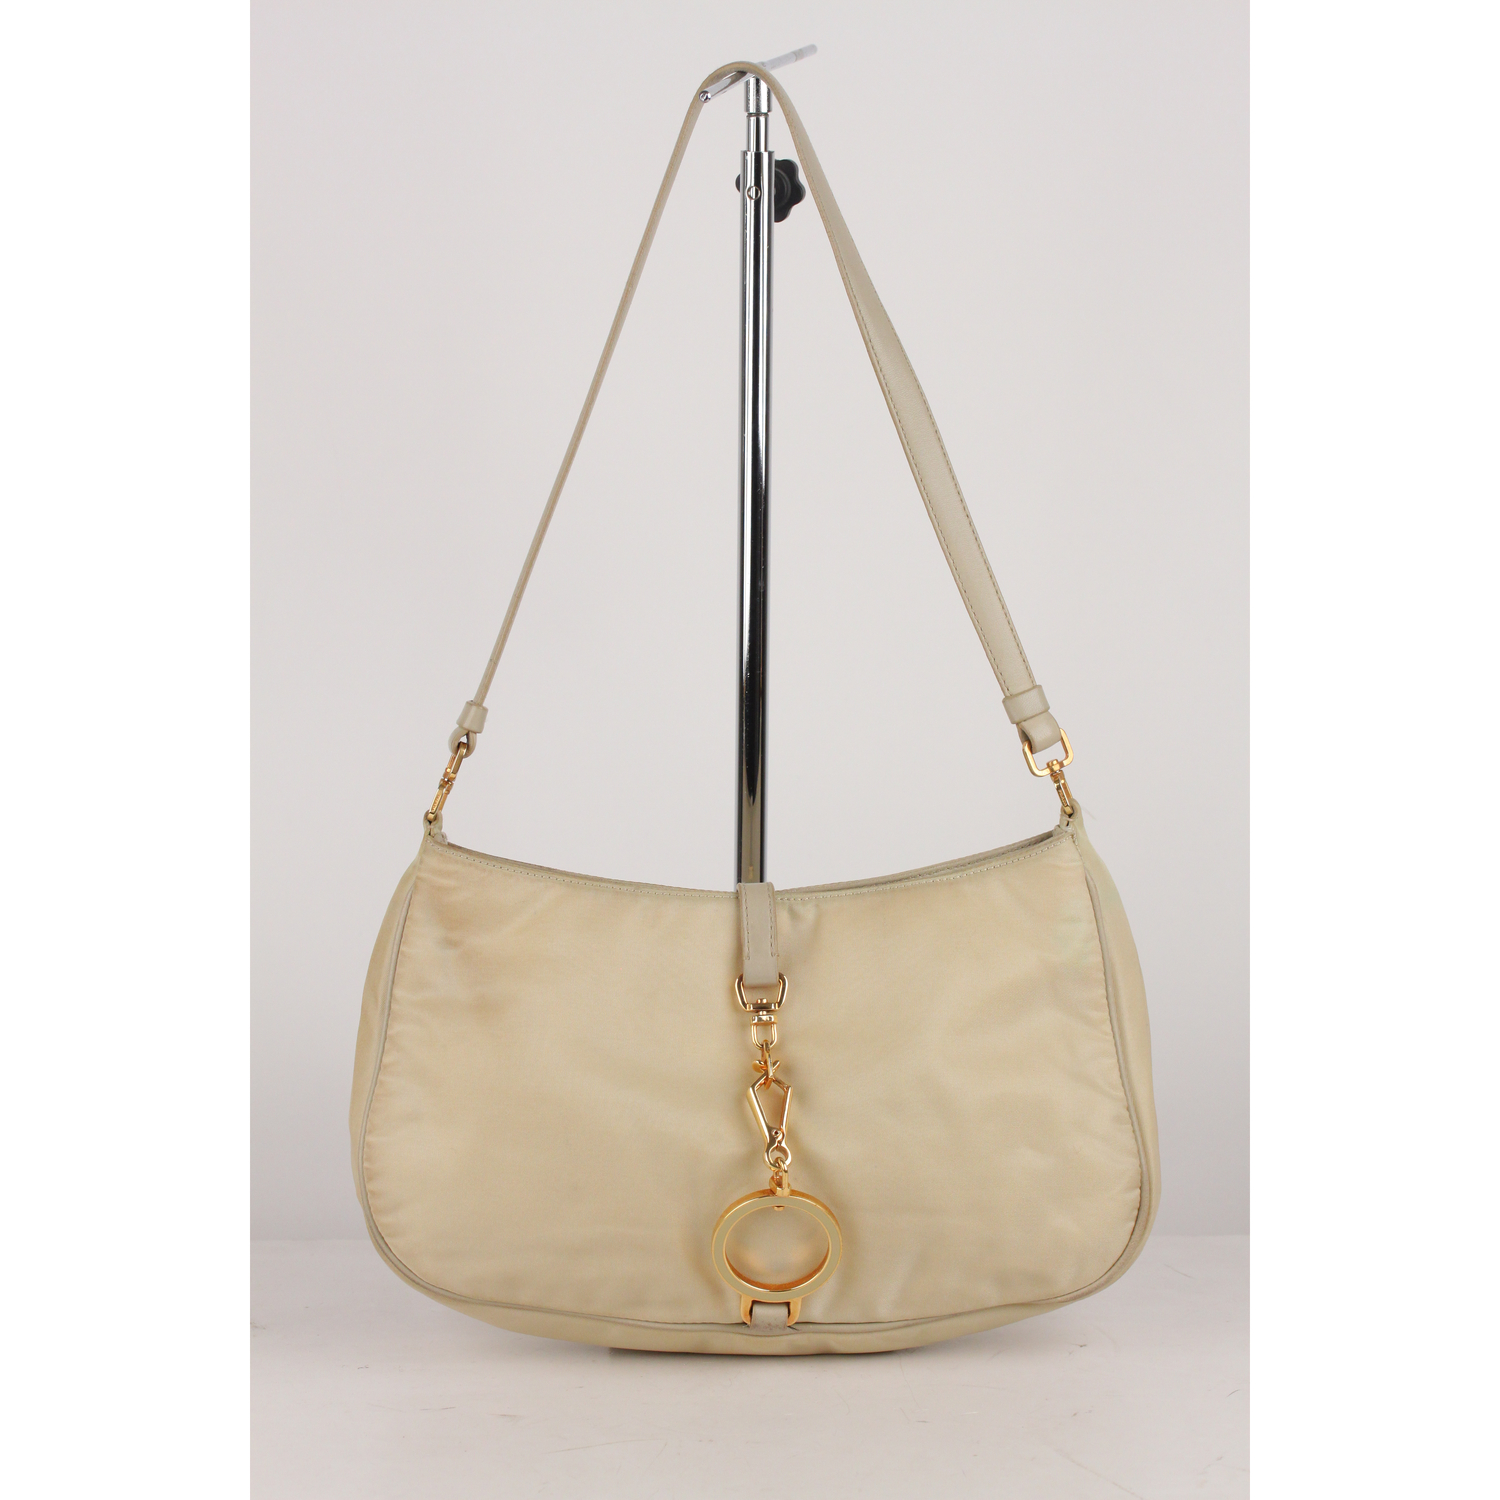 113a5b88ce61 Prada shoulder bag crafted in beige nylon and genuine leather trim. Open  top with fold over strap and clasp closure. 1 side zip pocket inside.